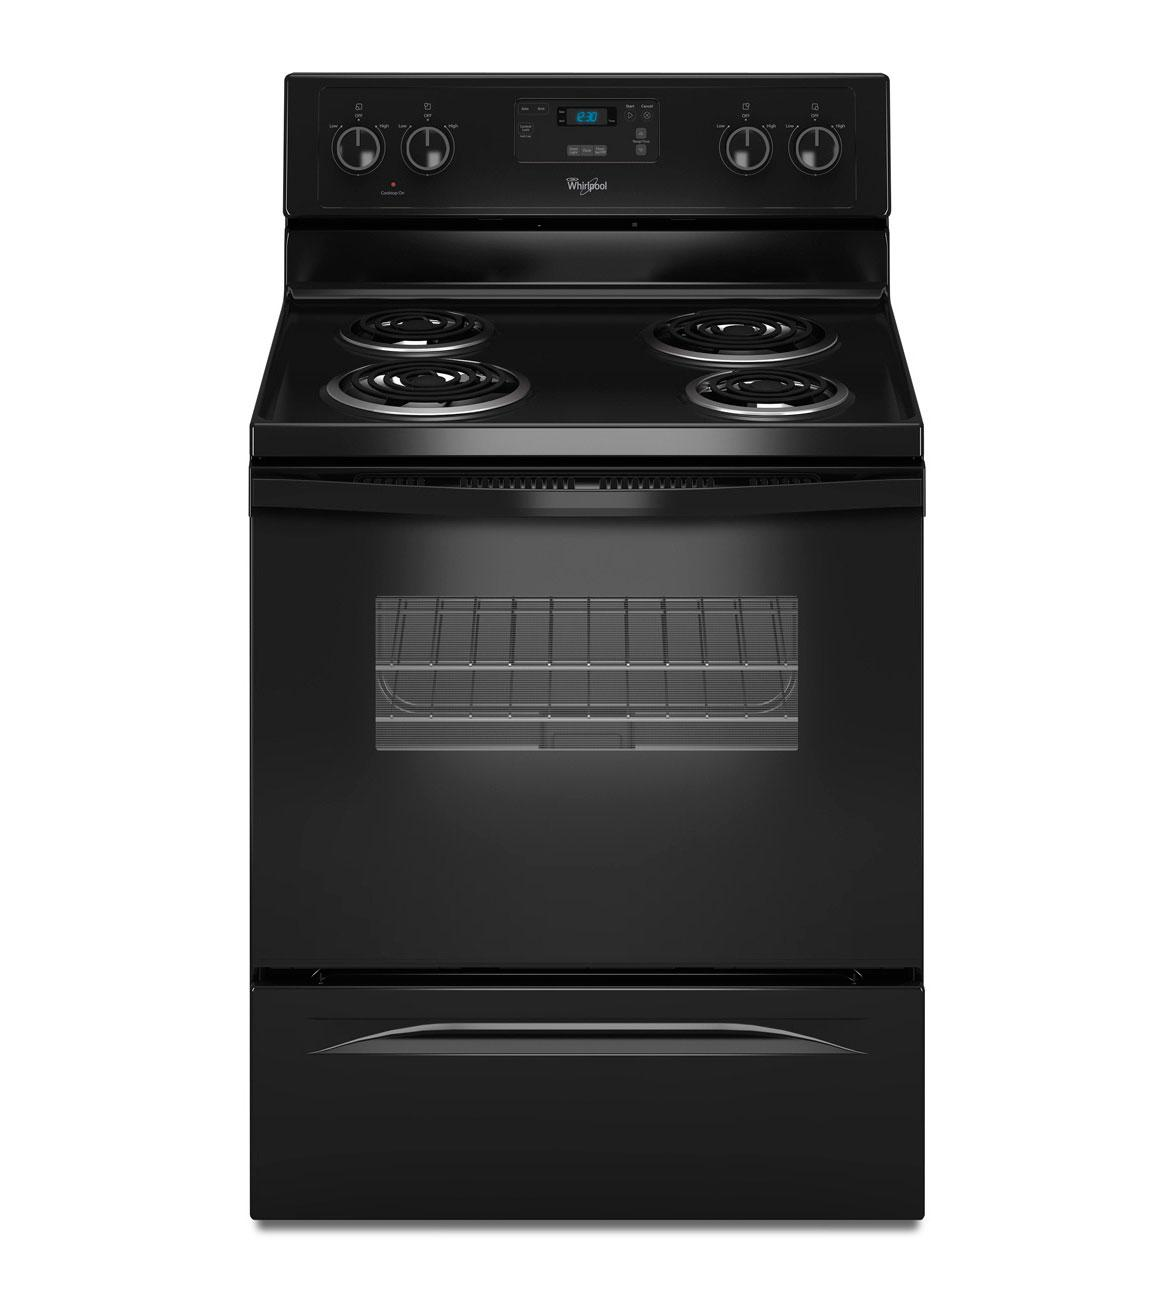 Wfc130m0aw Whirlpool Wfc130m0aw Electric Ranges White